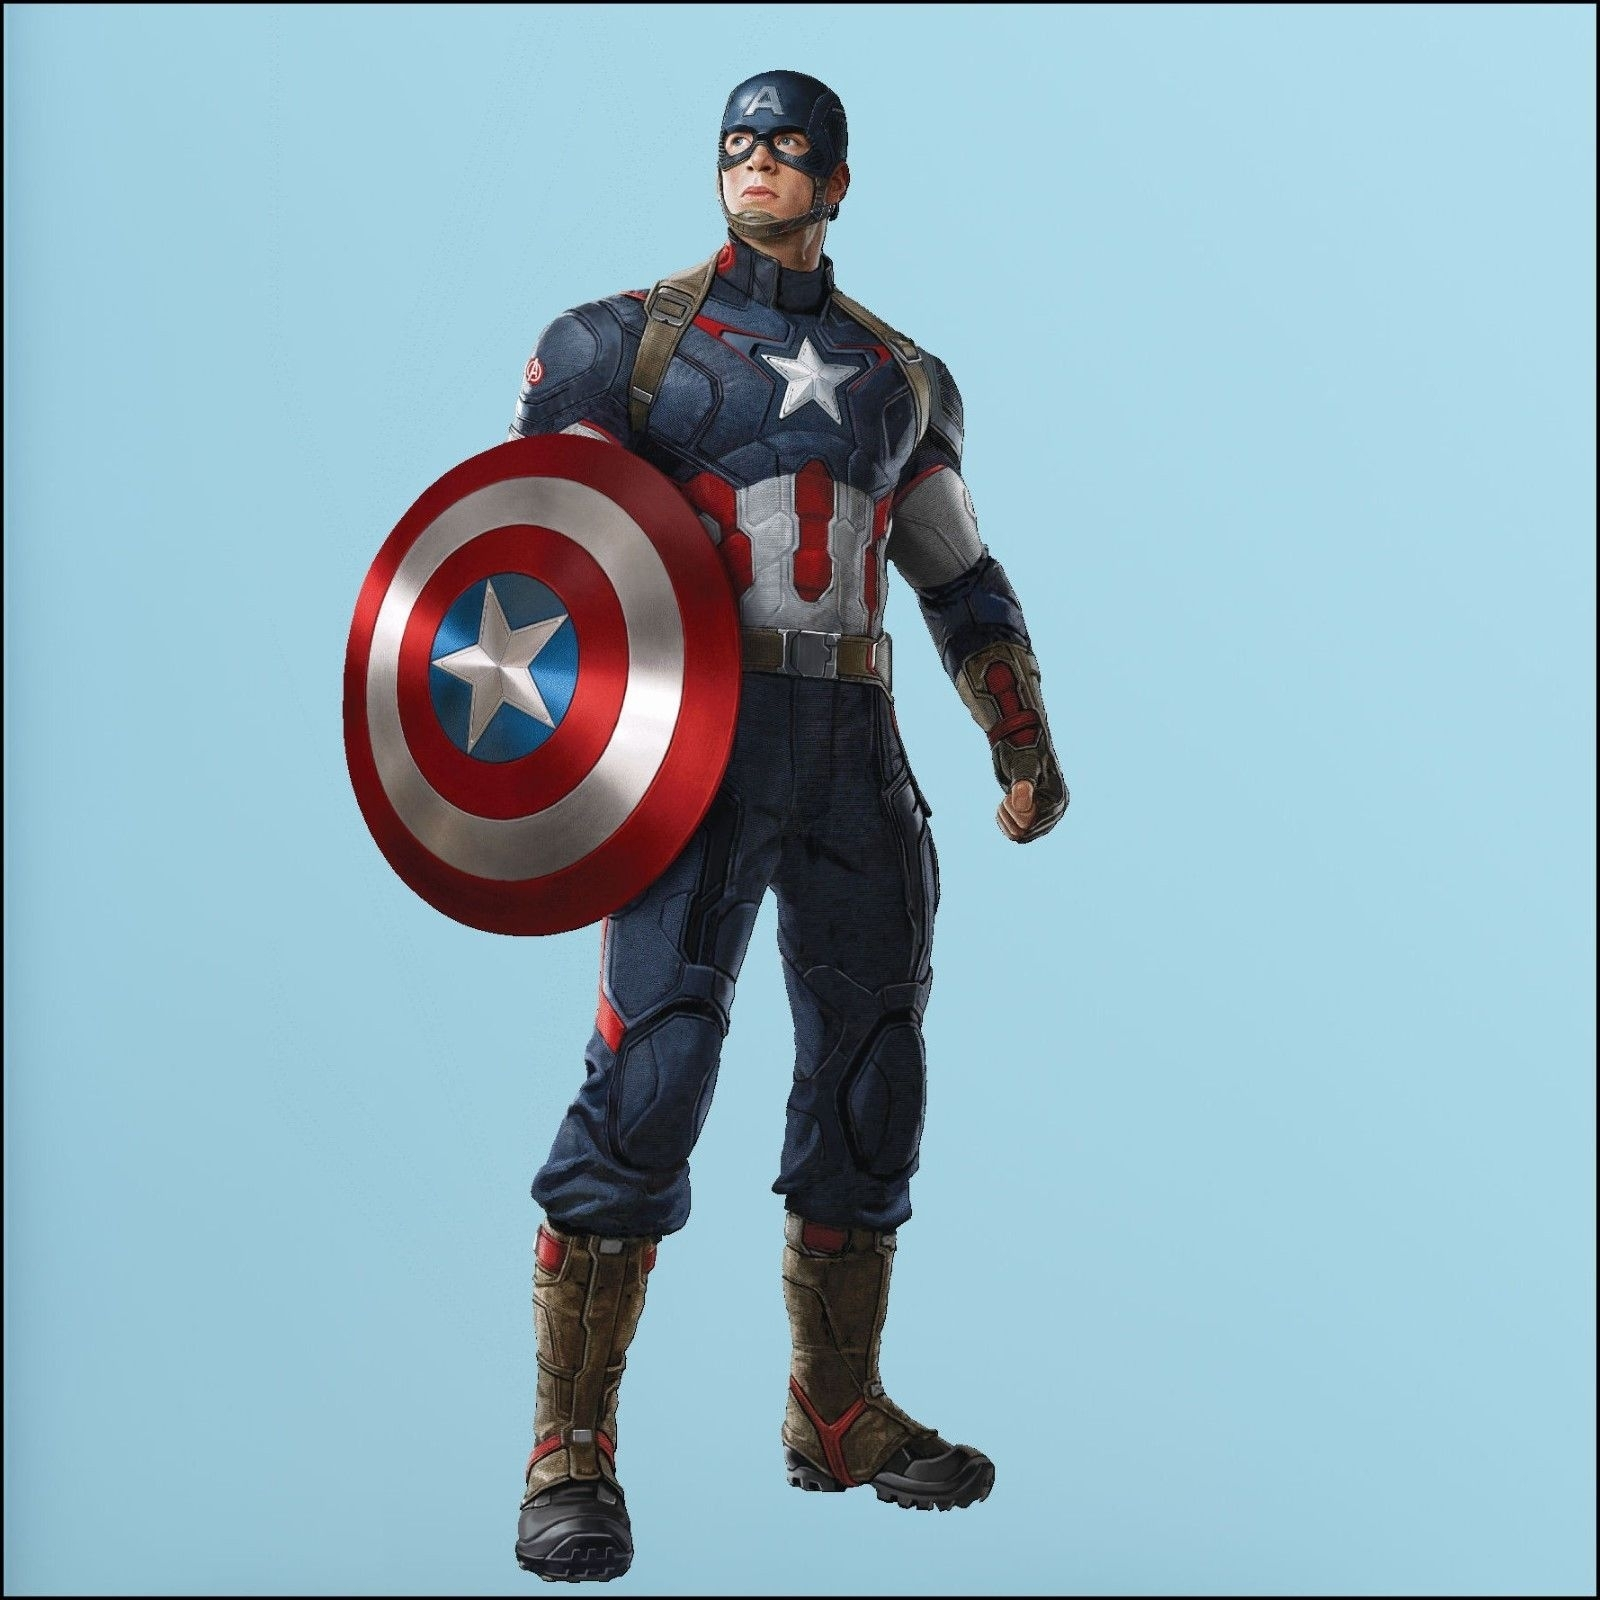 Captain America Avengers Photo Quality 3D Wall Sticker Art Mural With Regard To Most Up To Date Captain America Wall Art (View 4 of 15)